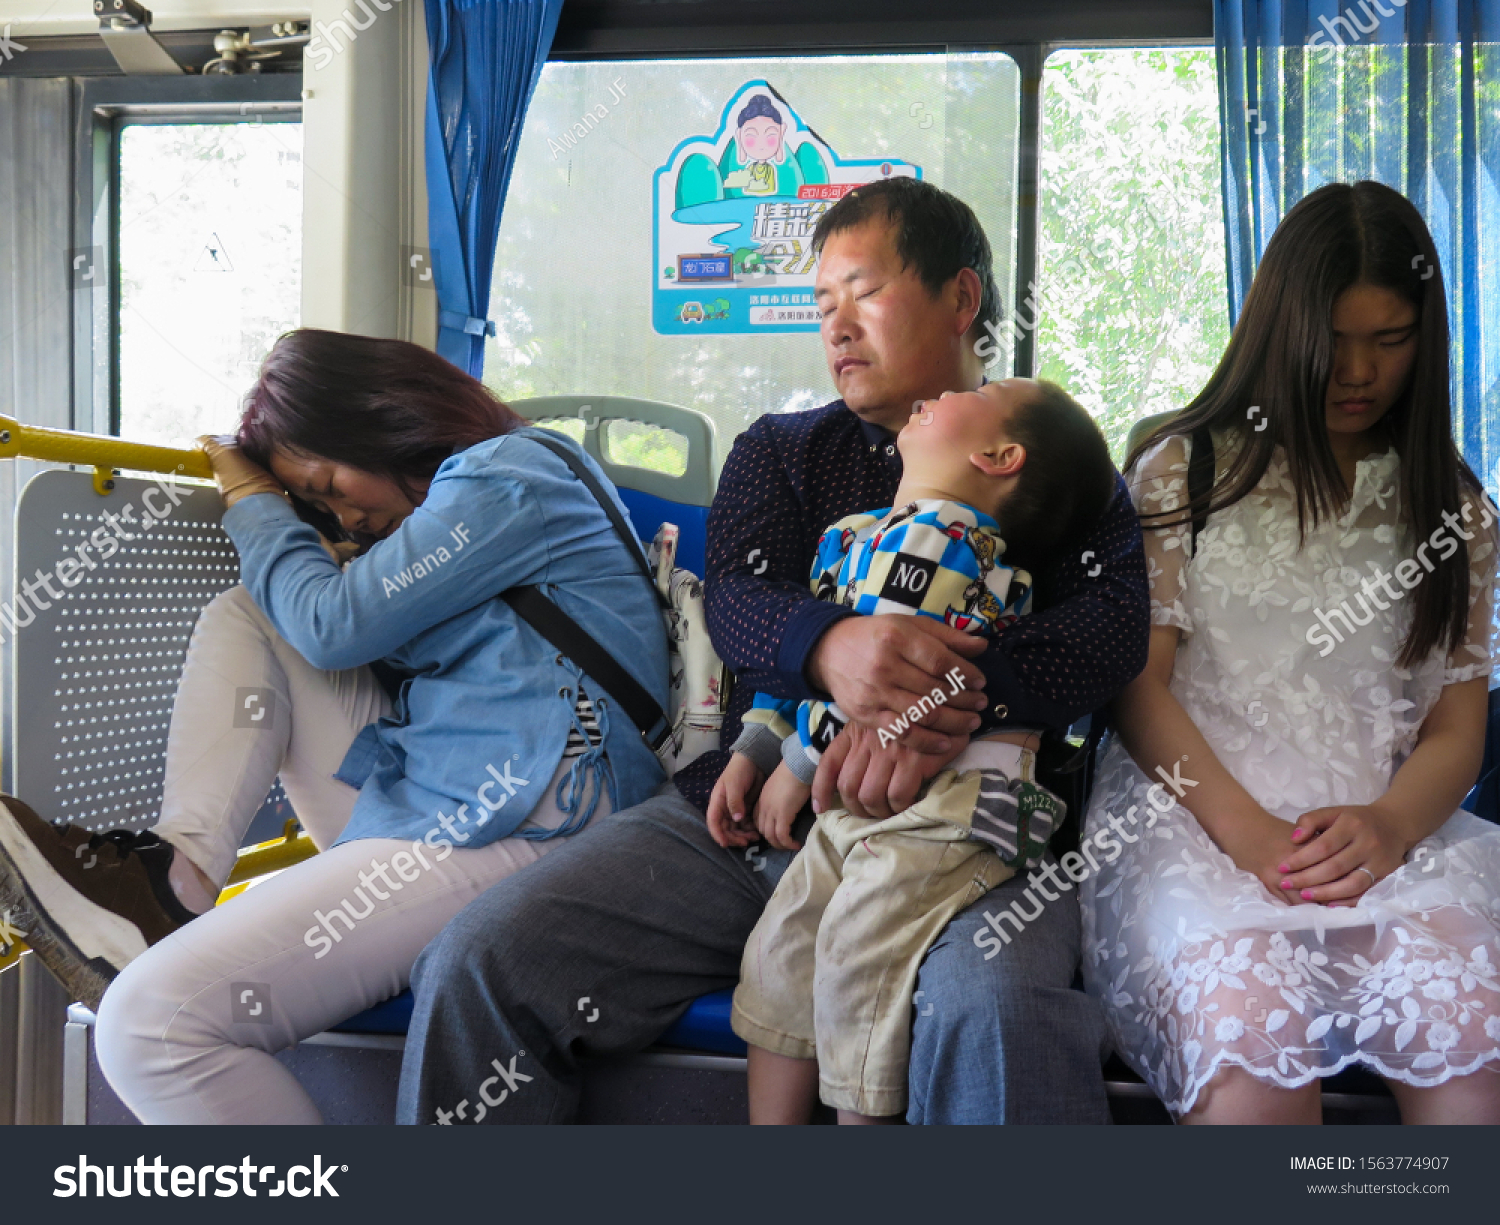 stock-photo-luoyang-china-april-sleeping